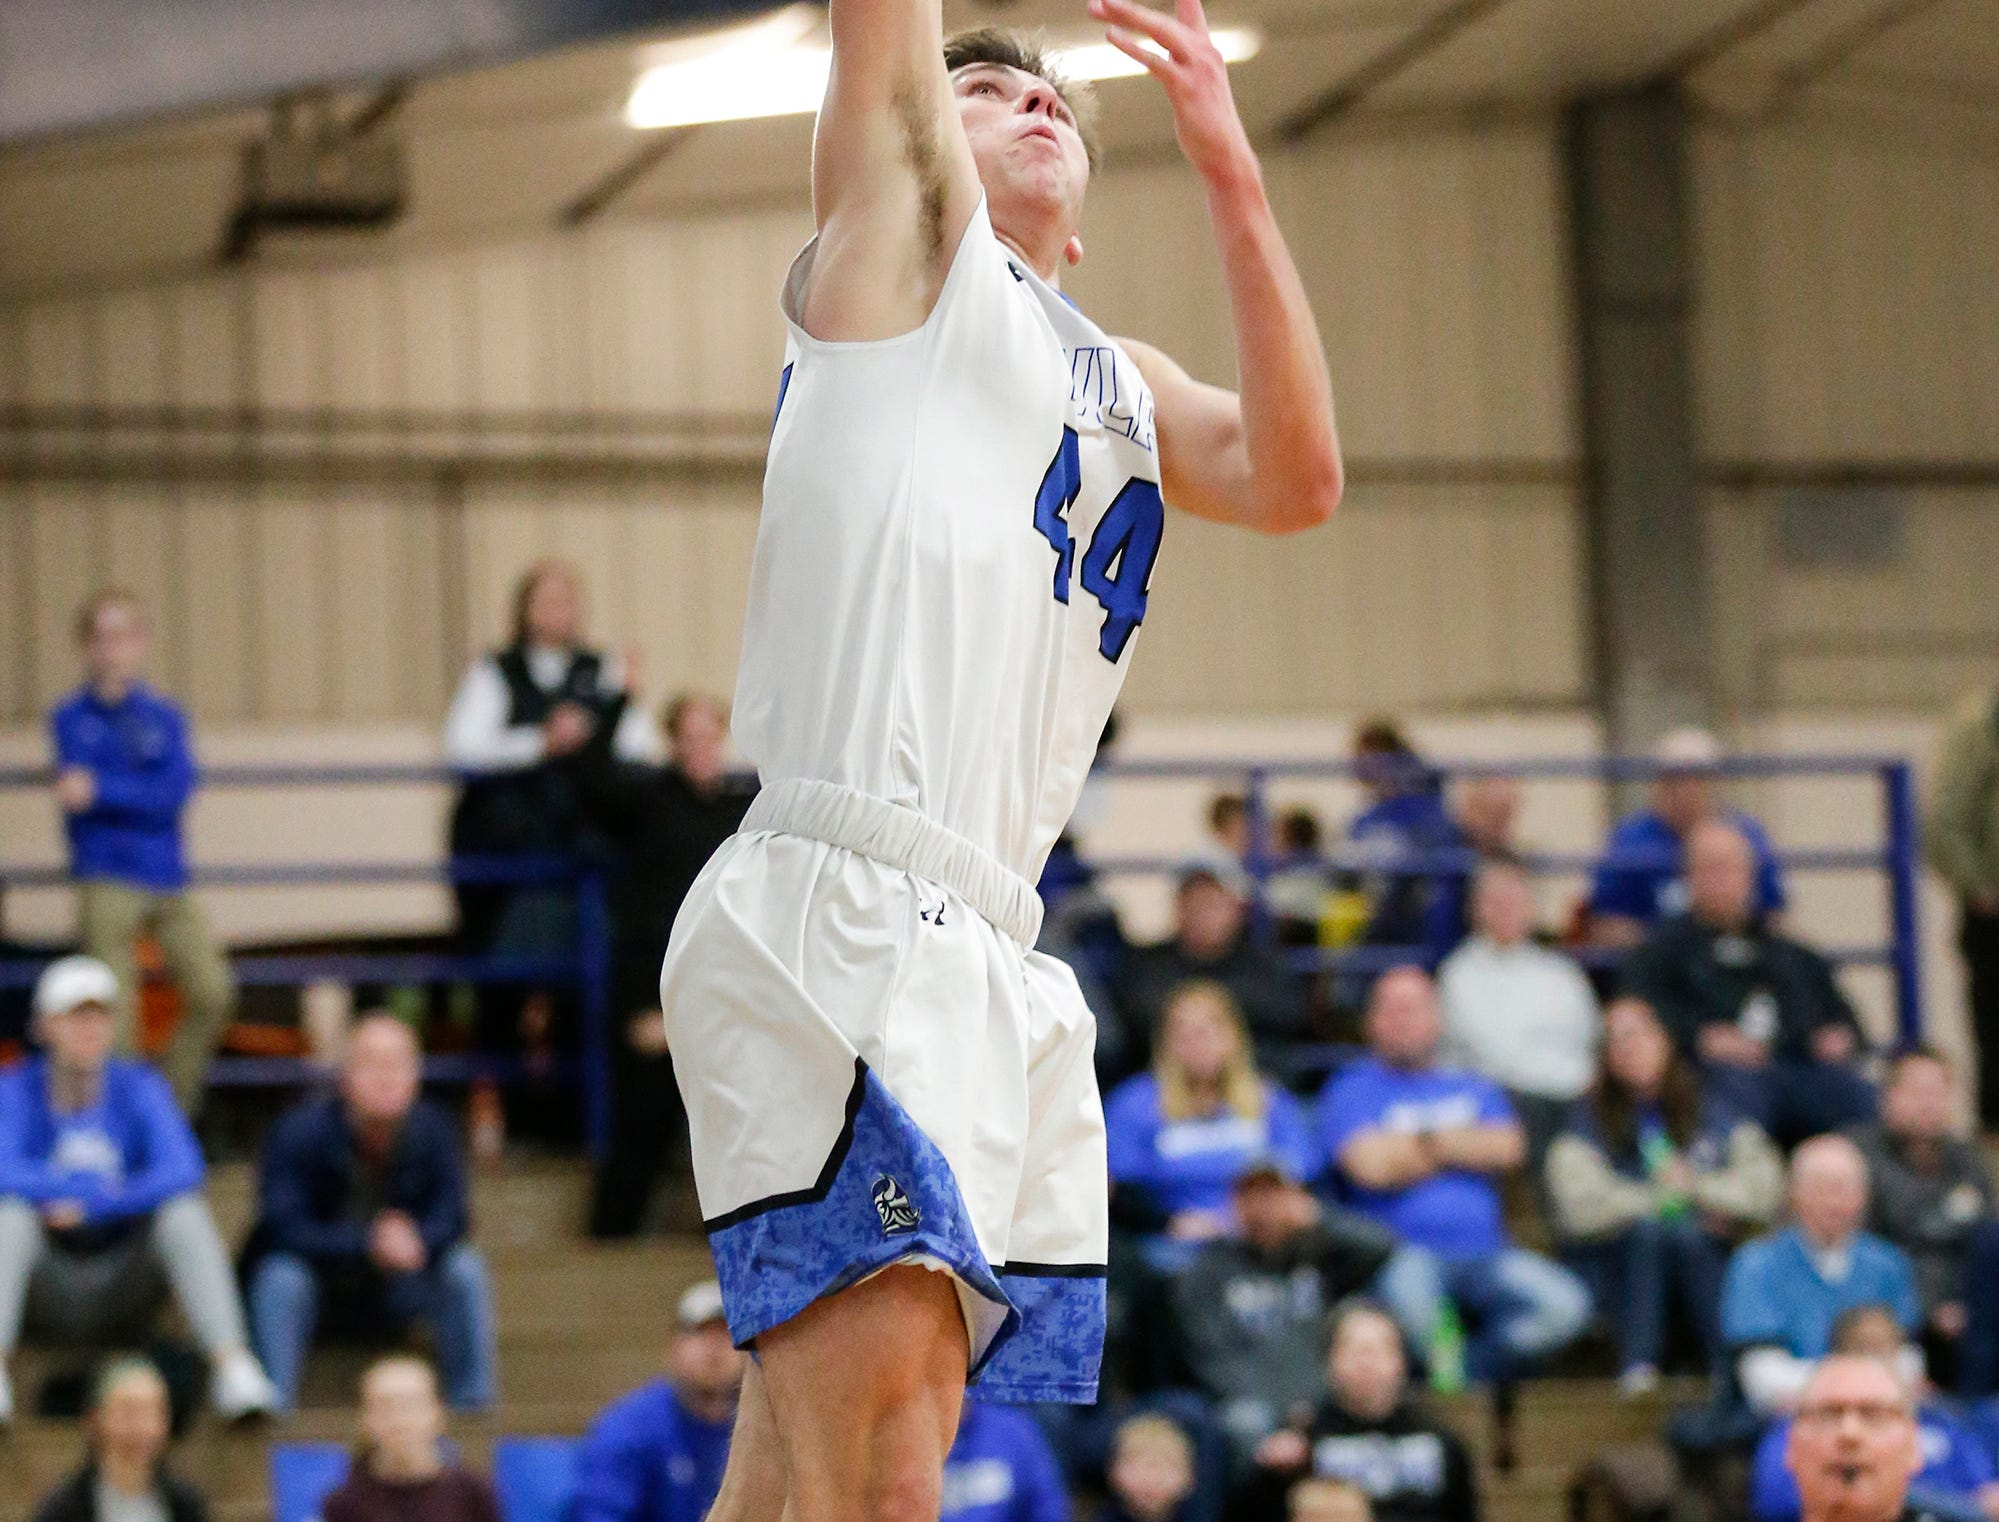 Winnebago Lutheran Academy boys basketball's Benji Cole dunks the ball after a steal against St. Mary's Springs Academy Tuesday, January 8, 2019 during their game in Fond du Lac. Winnebago Lutheran Academy won the game 69-66. Doug Raflik/USA TODAY NETWORK-Wisconsin